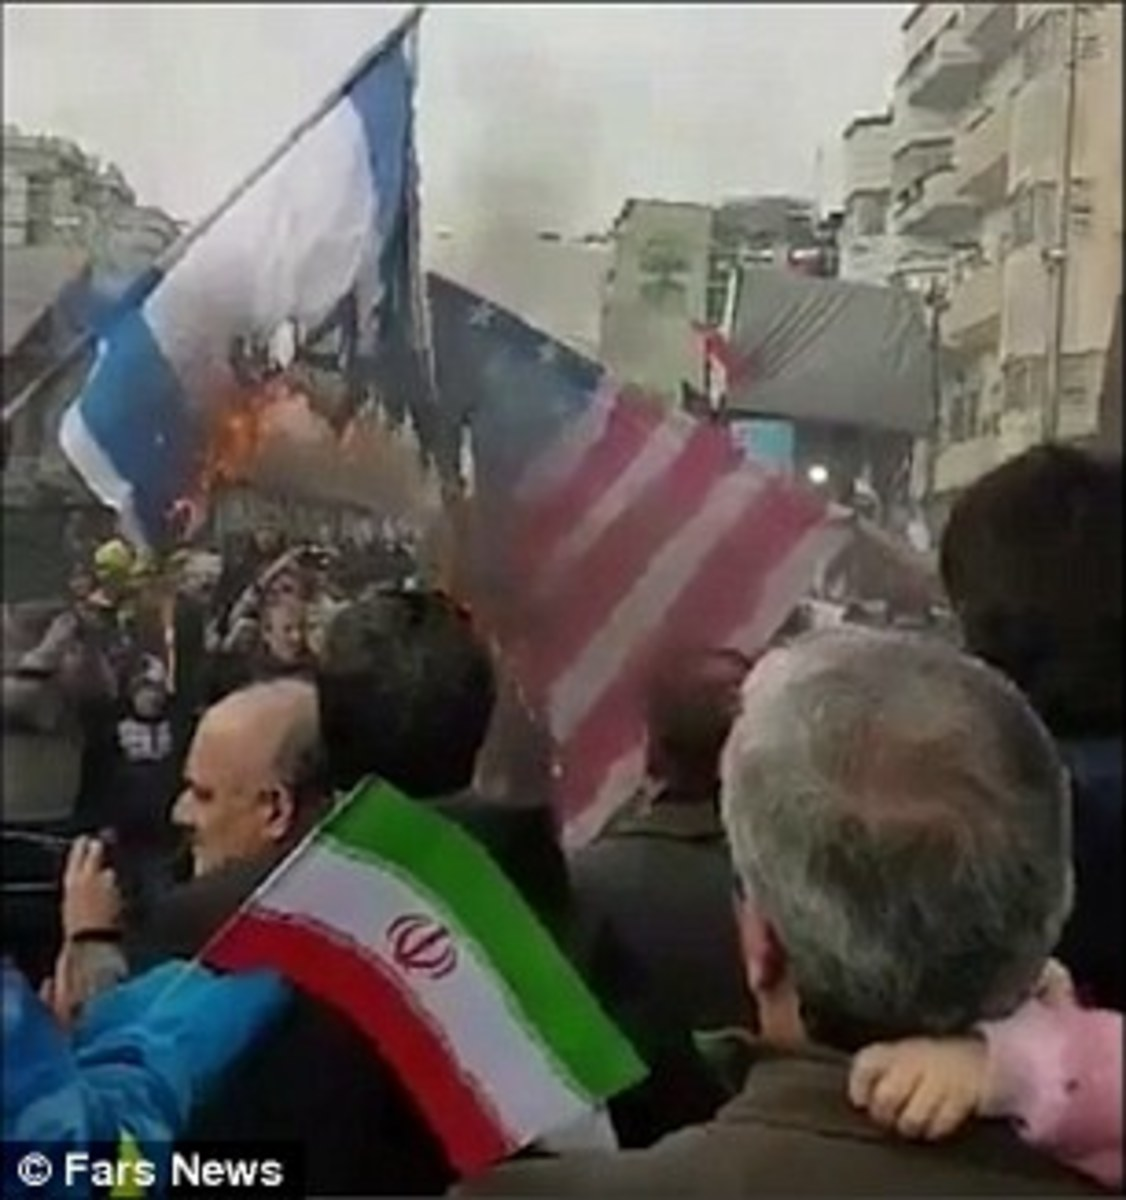 U.S. and Israeli flags were burned at rallies in the streets of Tehran, Iran recently.